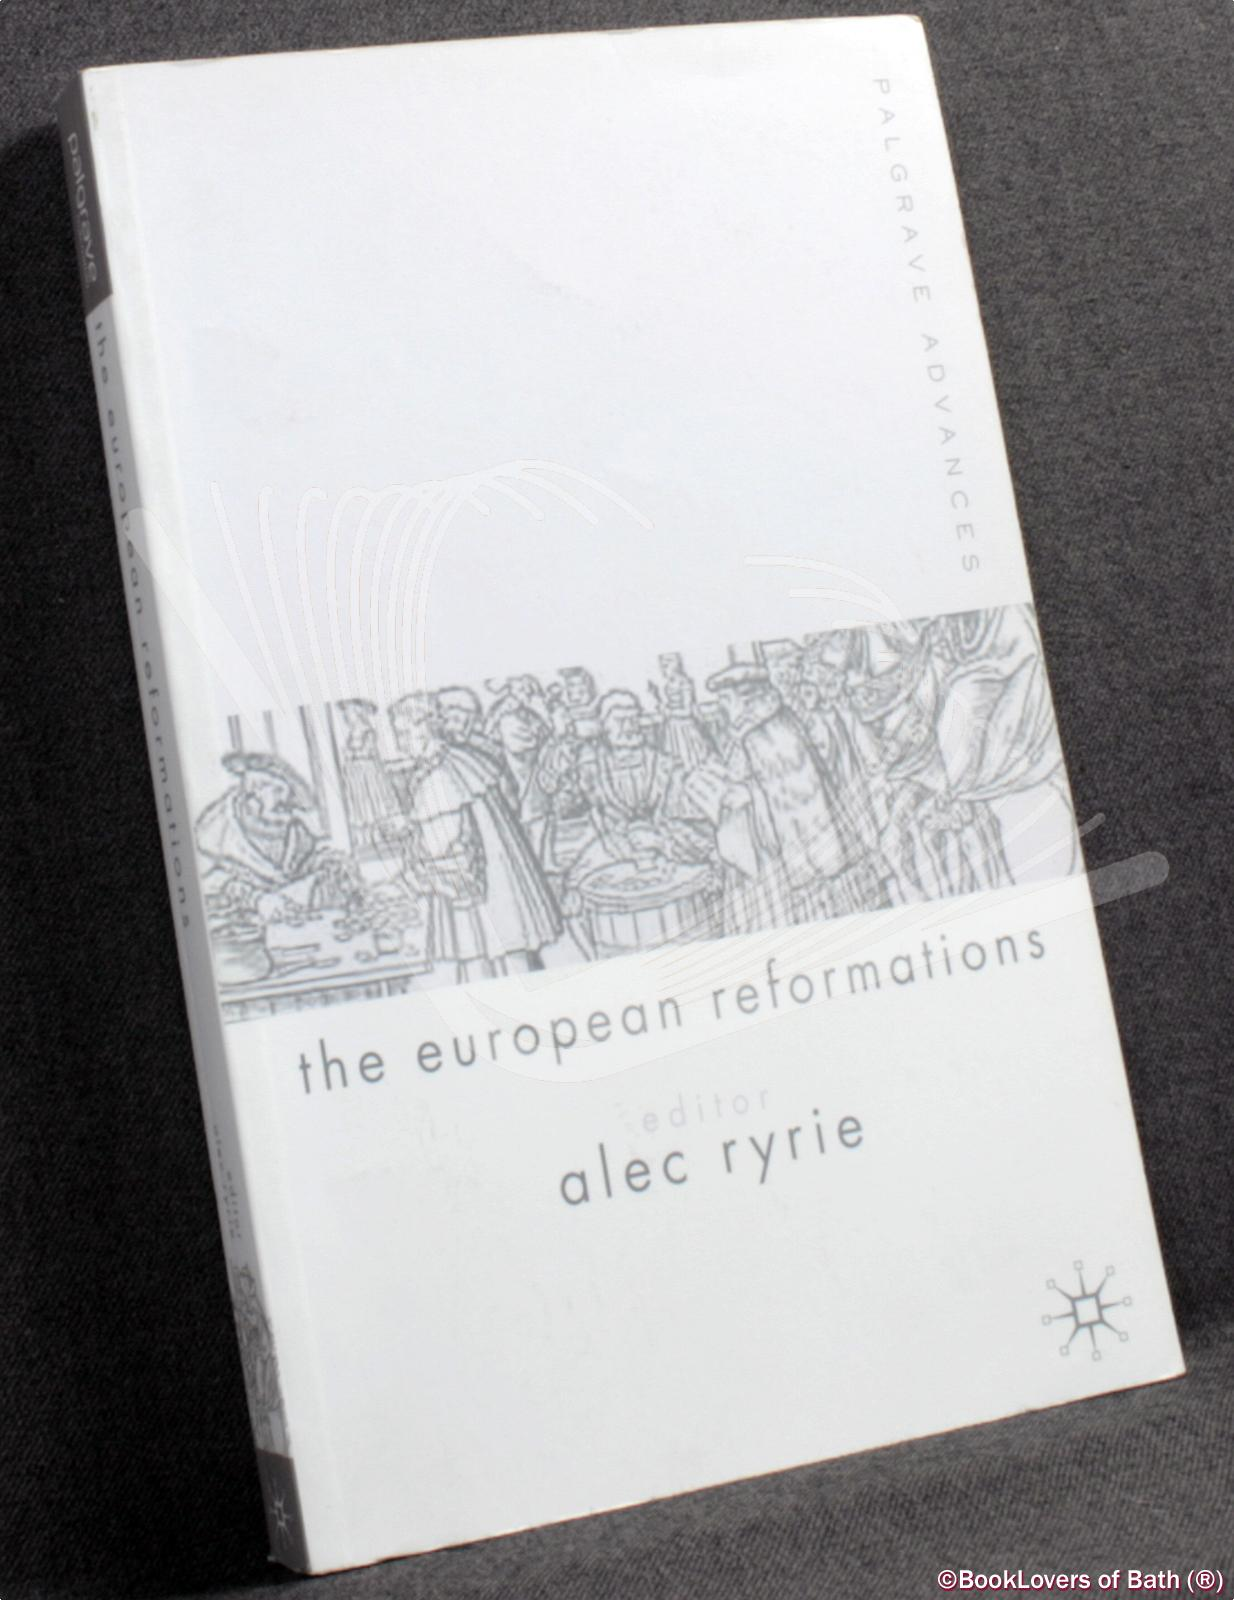 The European Reformations - Edited by Alec Ryrie